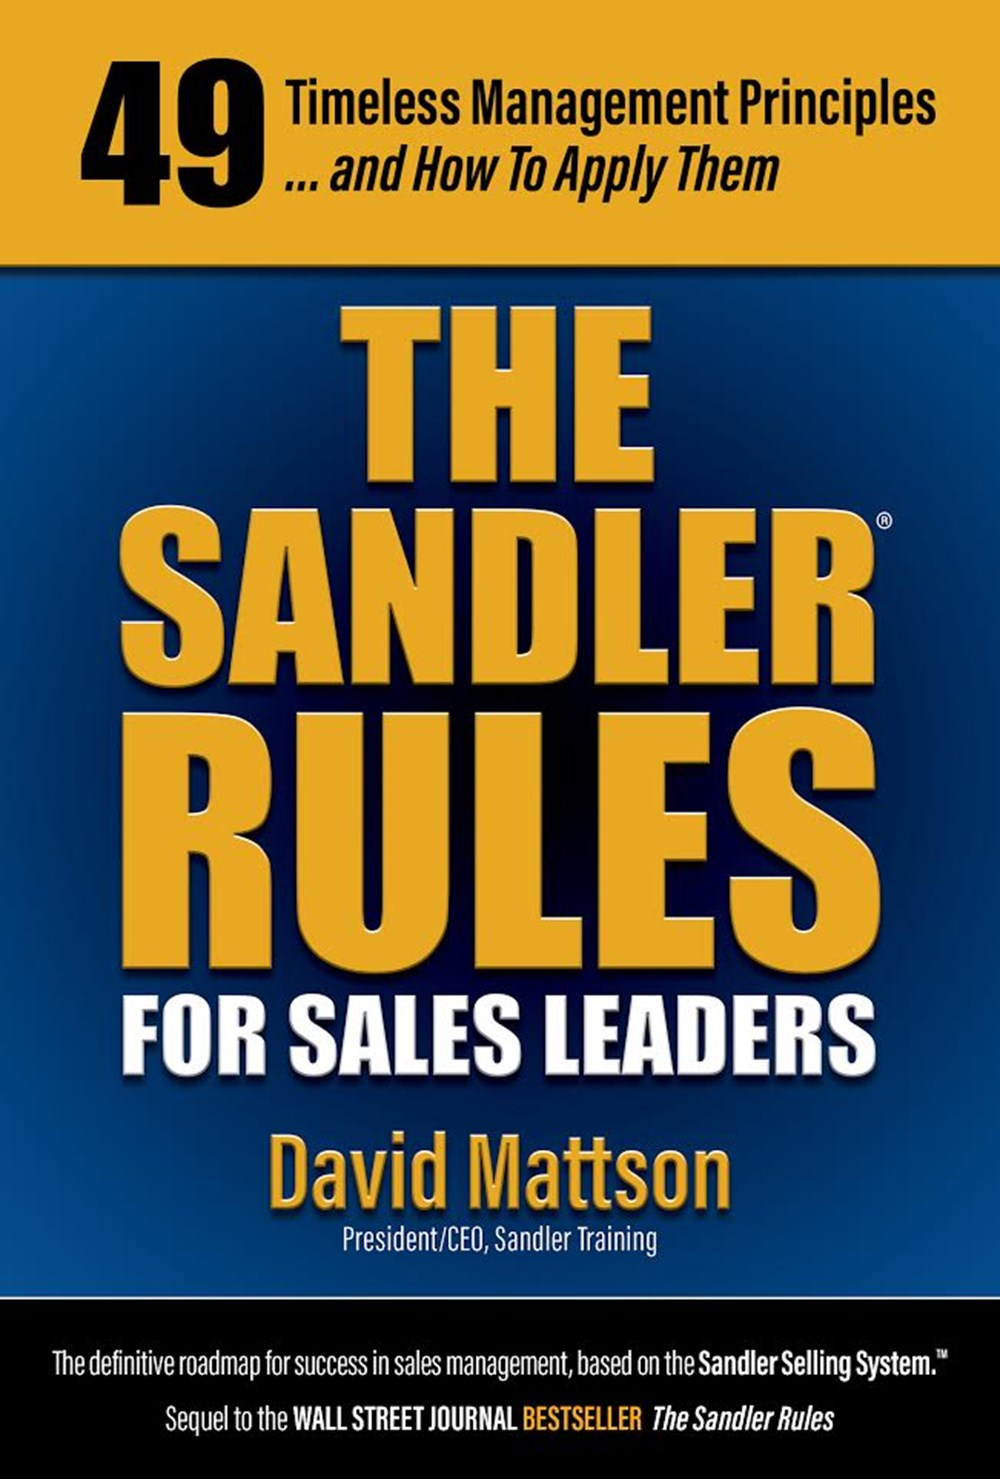 Sandler Rules for Sales Leaders 49 Timeless Management Principles . . . And How To Apply Them